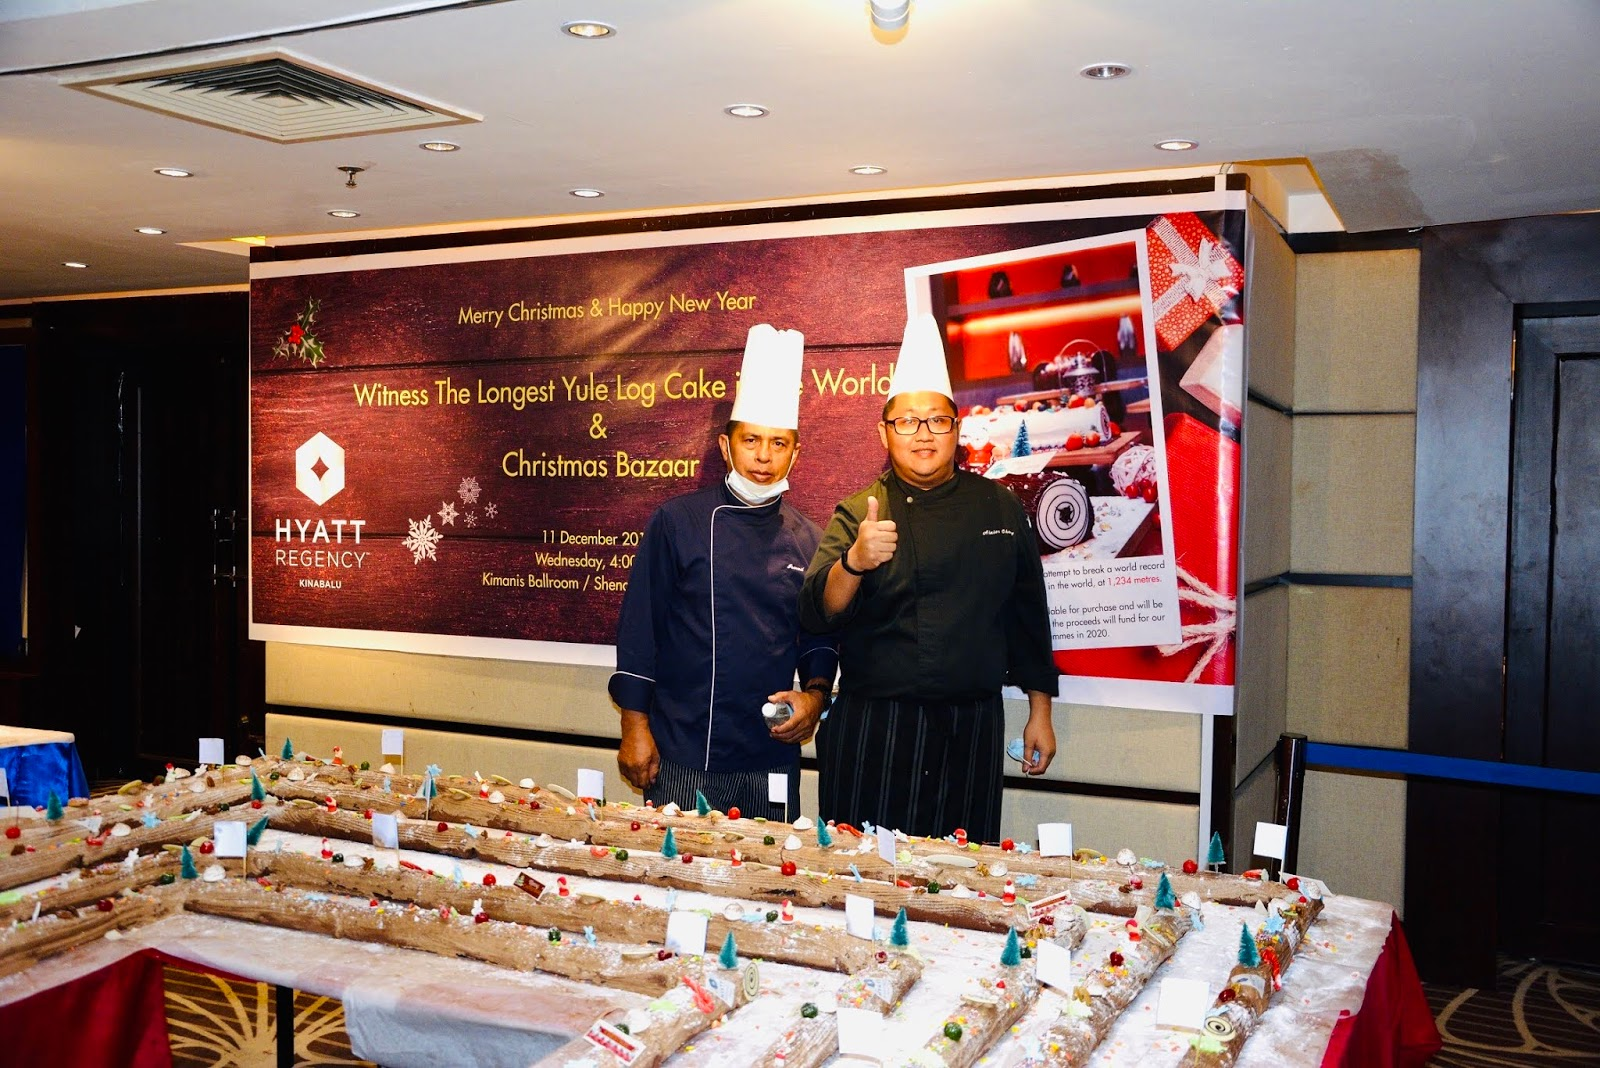 HYATT REGENCY KINABALU RECORD BREAKING ATTEMPT FOR WORLD'S LONGEST YULE LOG CAKE